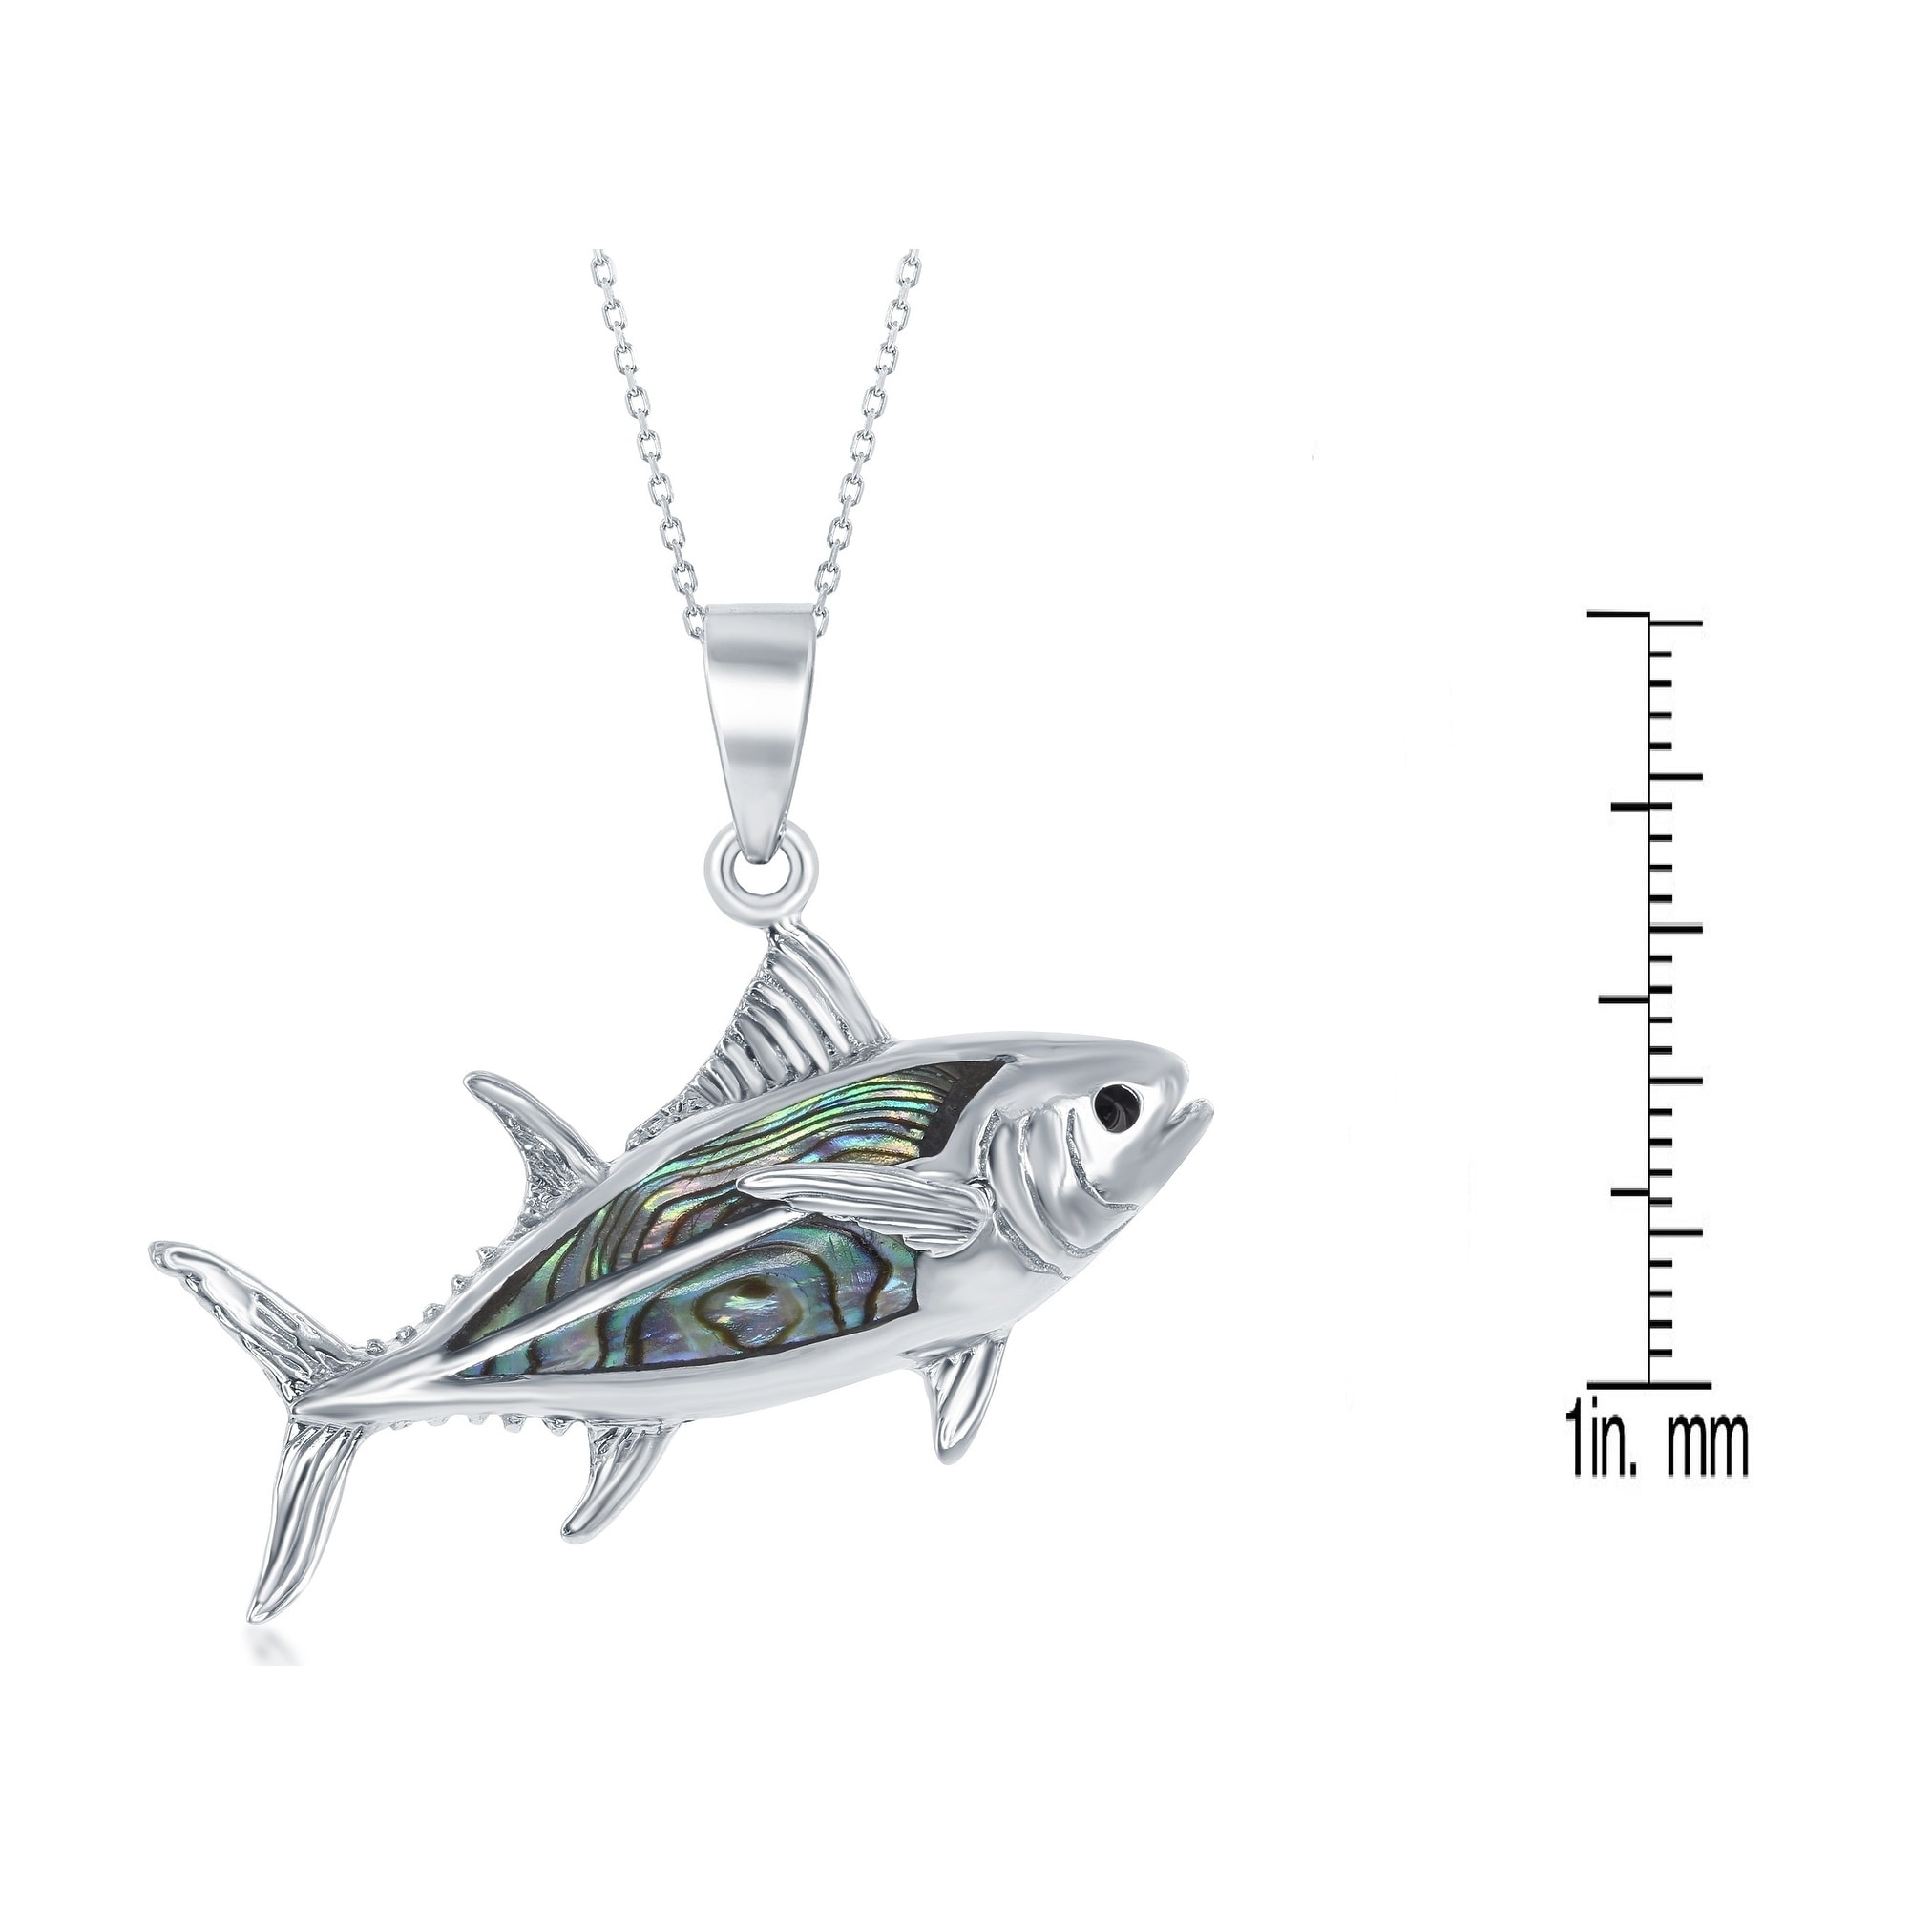 PENDANT ONE STERLING SILVER FISH CHARM 18 X 11 MM